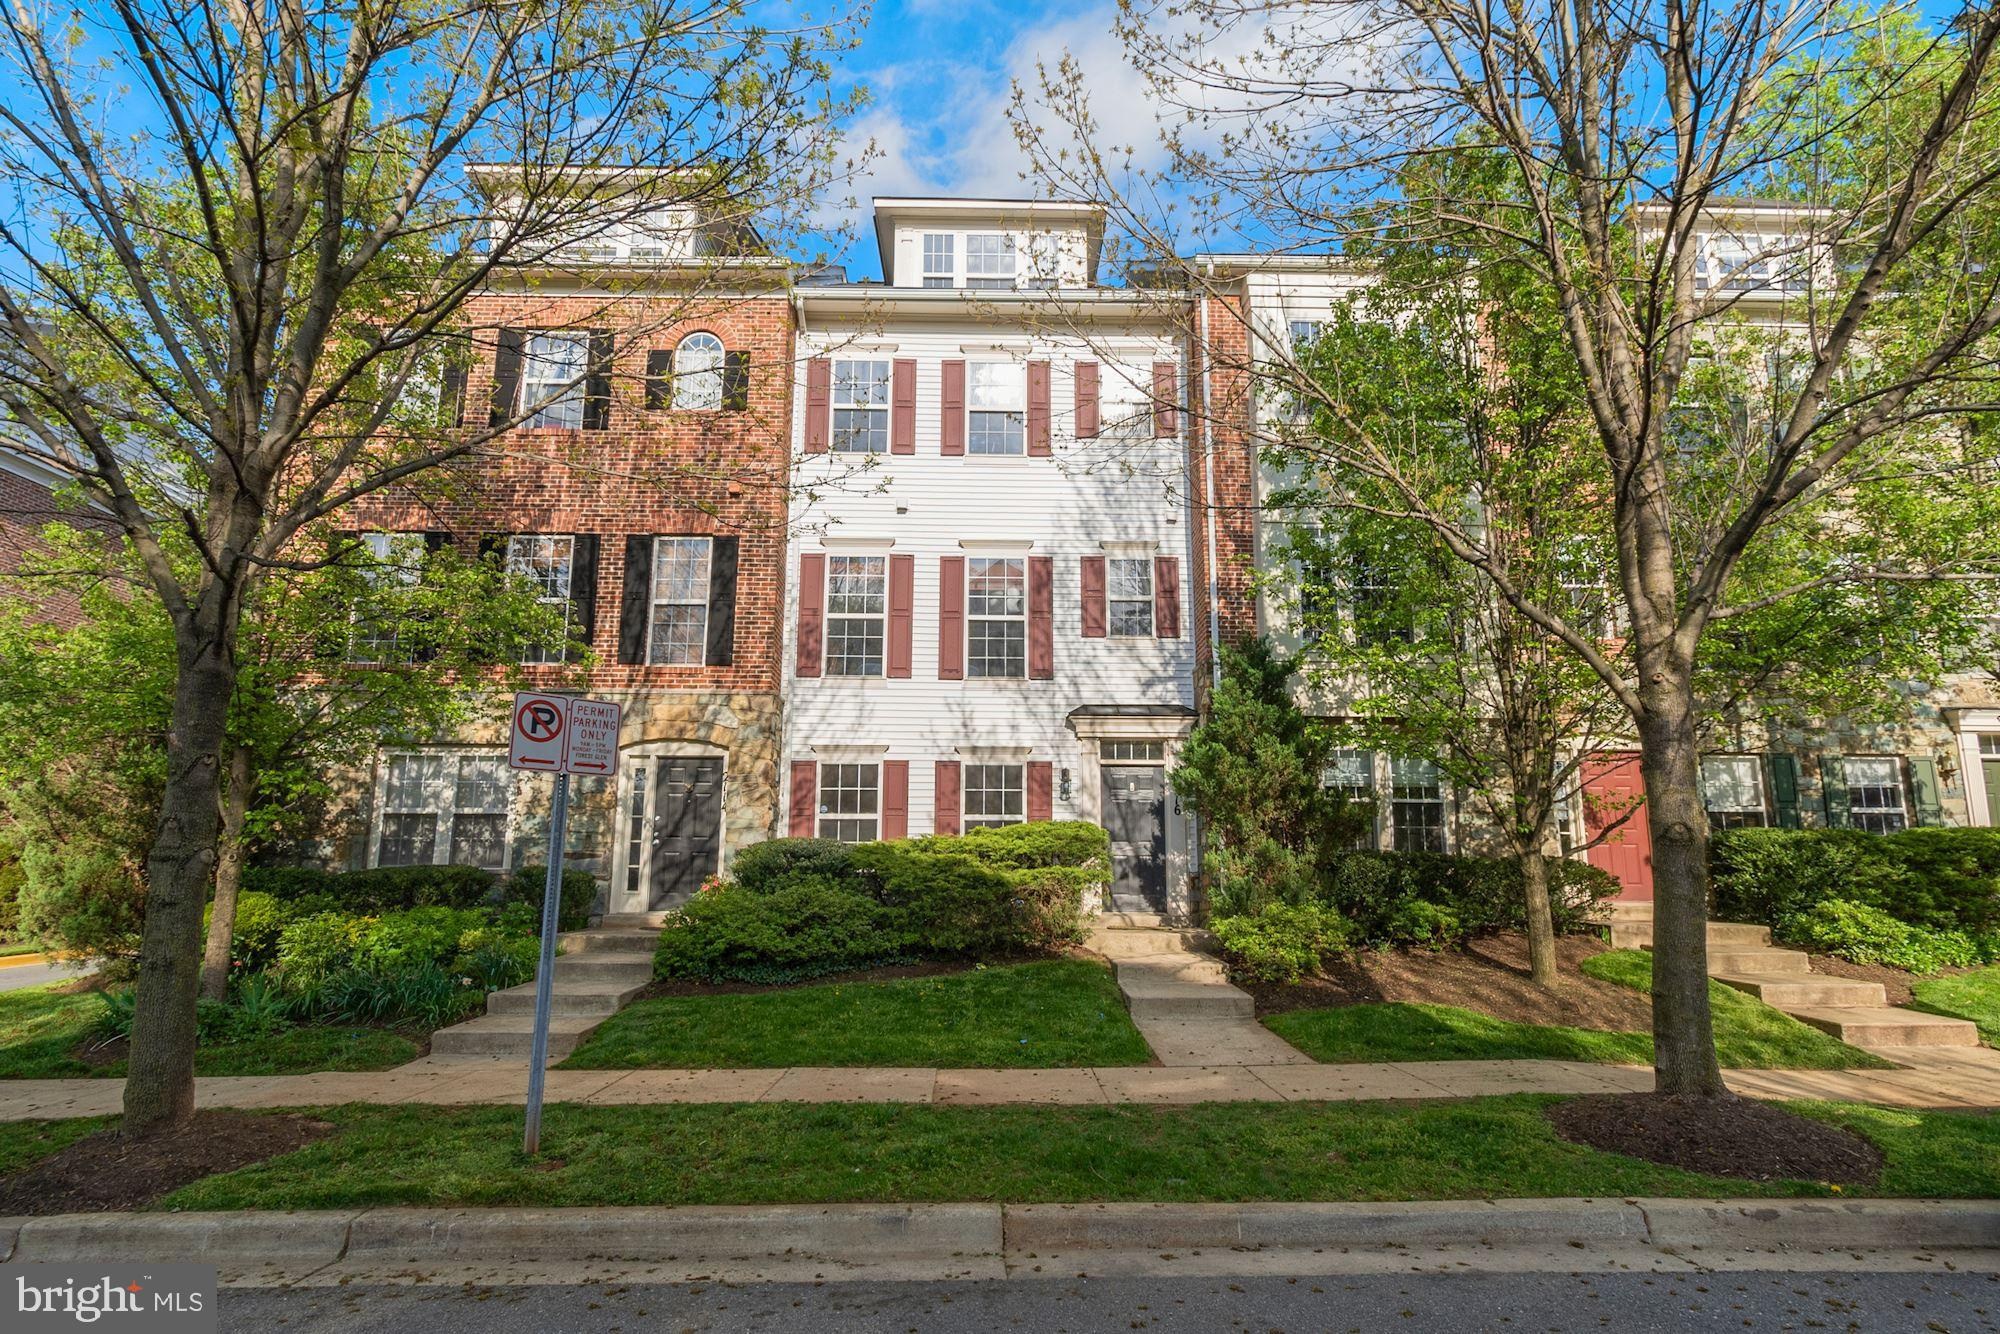 2116 CLARK PLACE, SILVER SPRING, Maryland 20910, 3 Bedrooms Bedrooms, ,4 BathroomsBathrooms,Townhouse,For Sale,2116 CLARK PLACE,MDMC753174